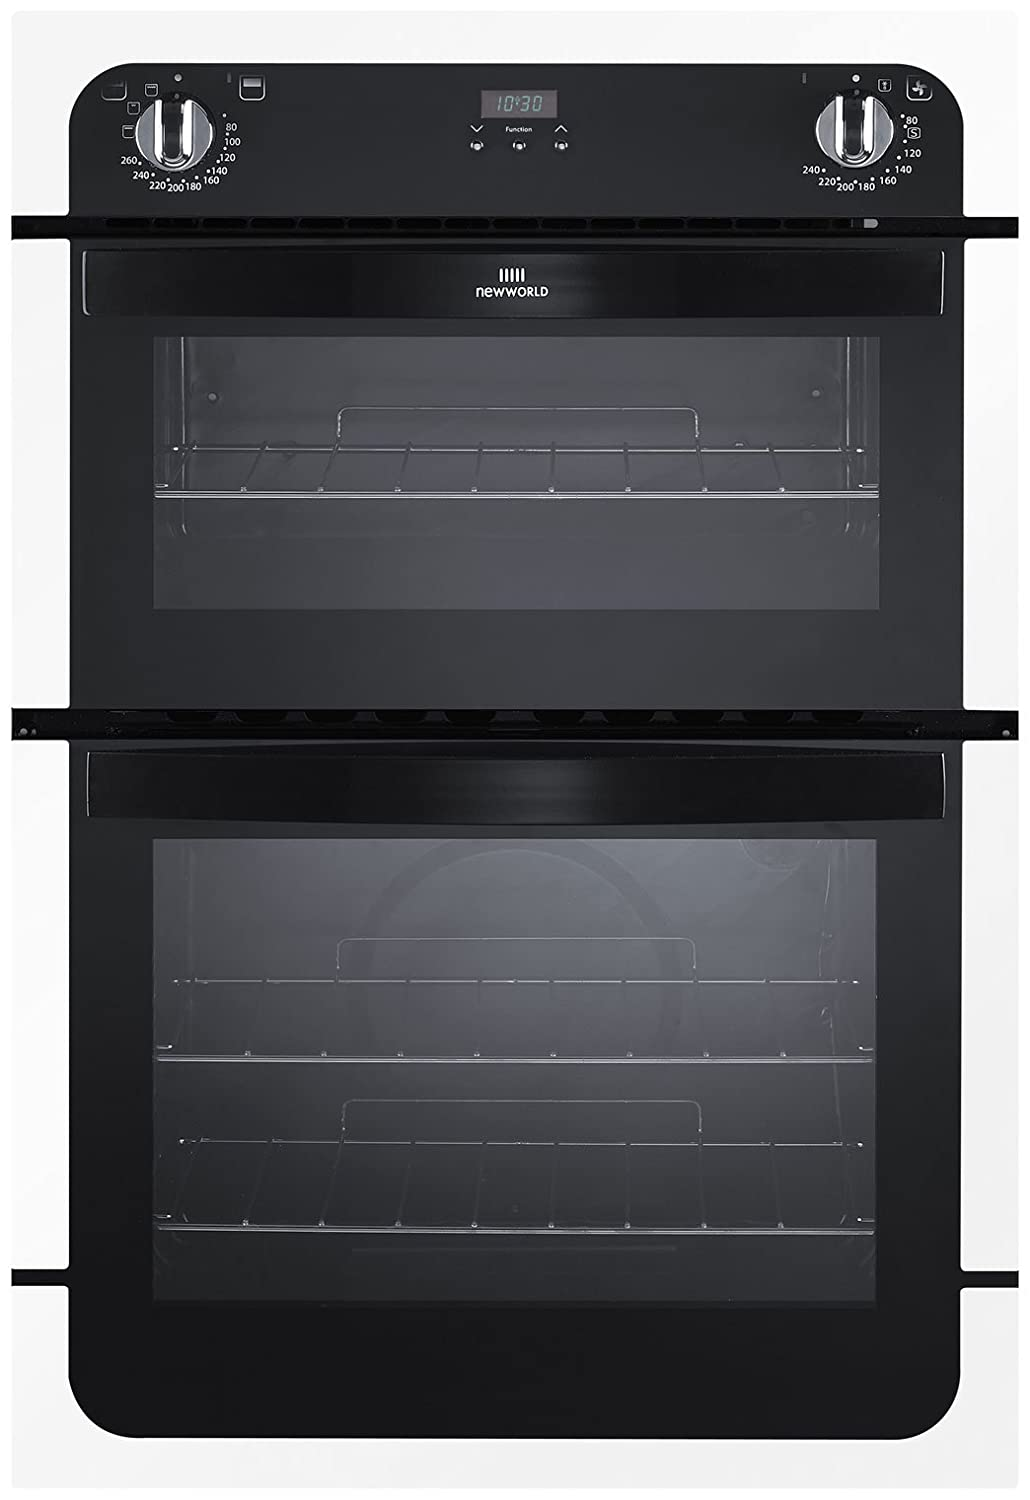 New World NW901DOPBLK 900mm Built In Double Electric Oven Black Amazoncouk Large Appliances